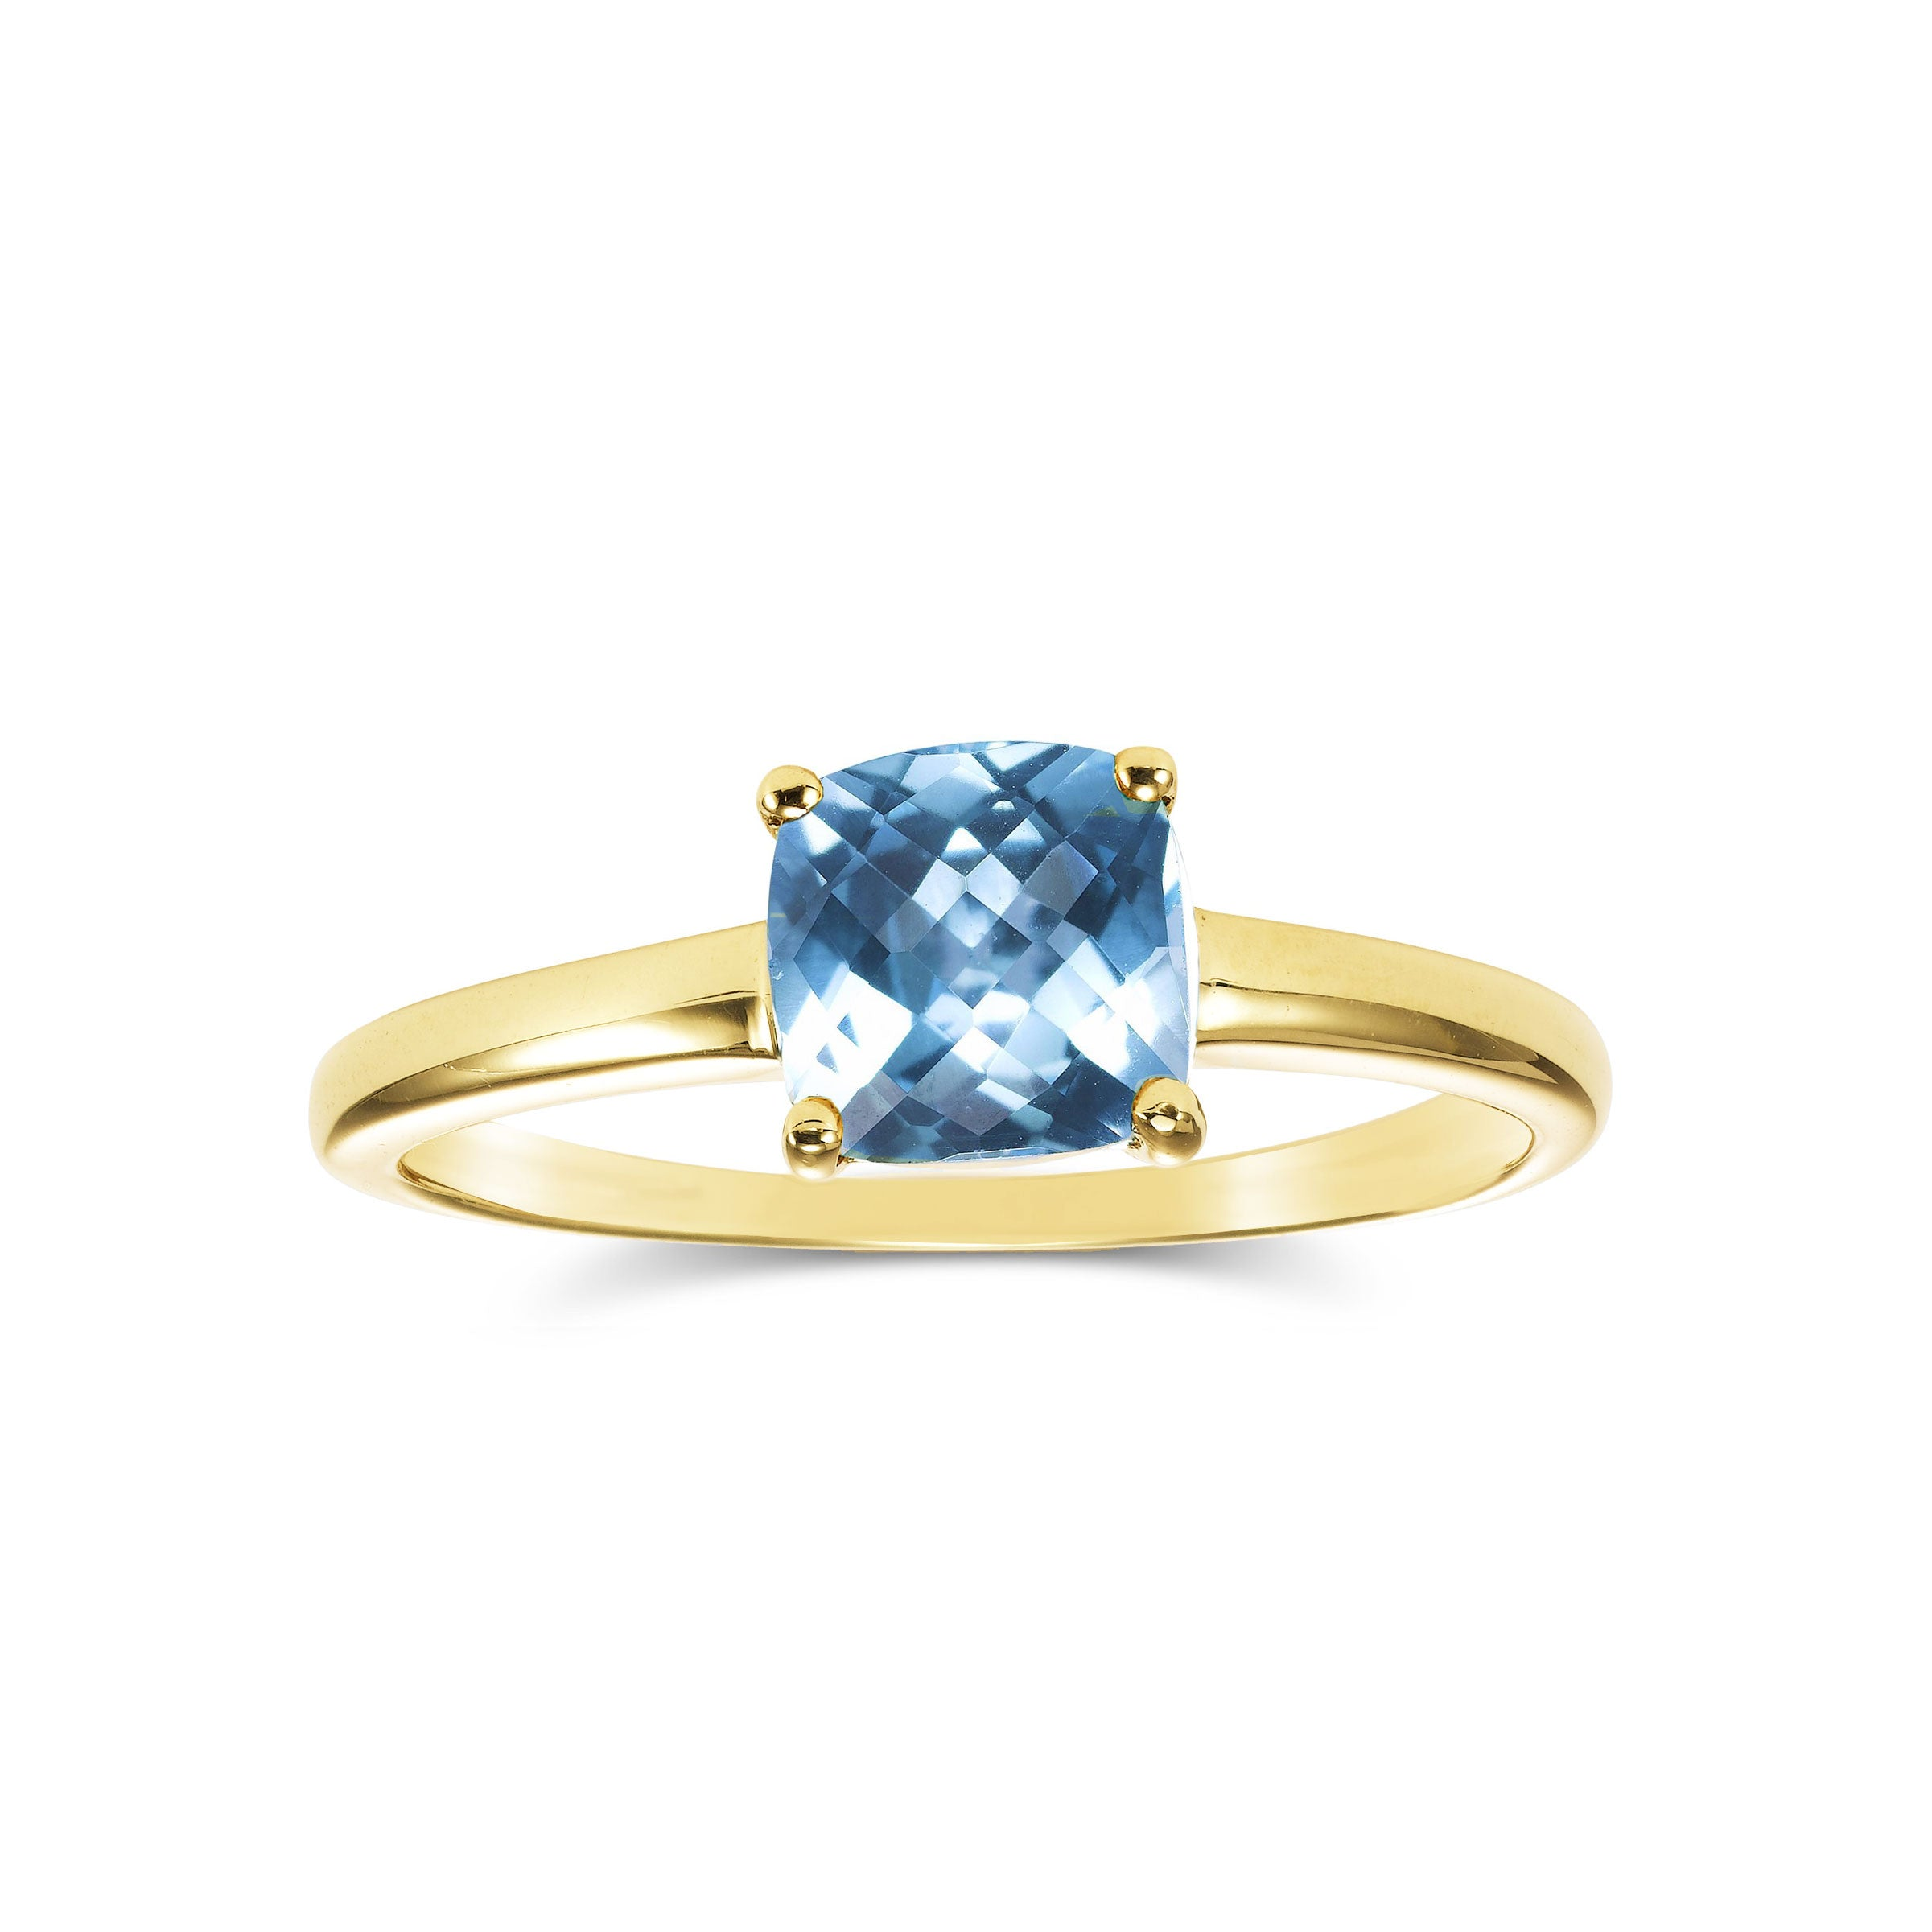 Cushion Cut Blue Topaz Ring, 14K Yellow Gold